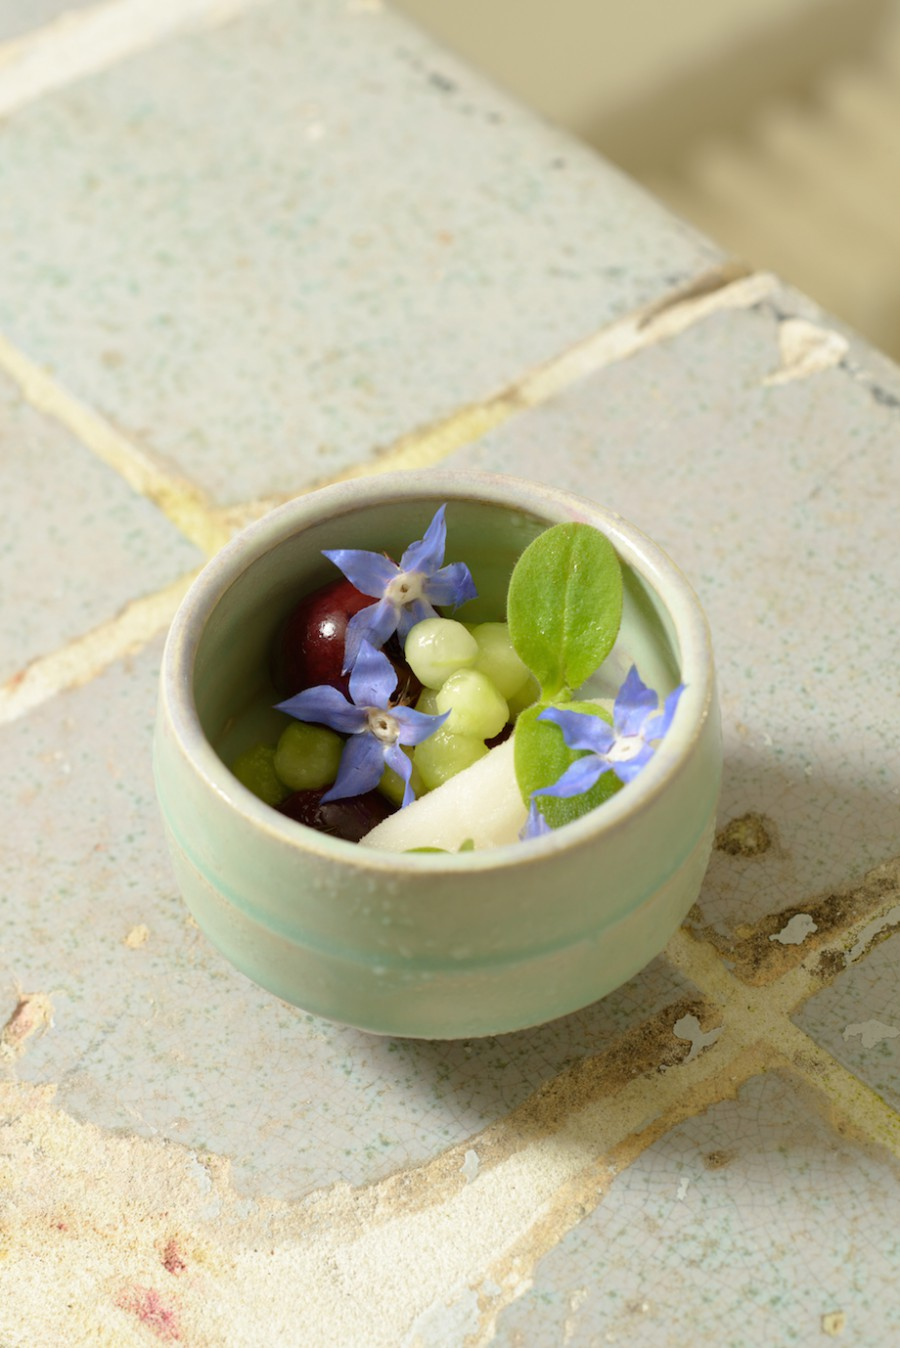 Cucumber, Cherries and Borage flowers from chef Emile van der Staak (De Nieuwe Winkel) served in a clay cup by Michael J. Strand.